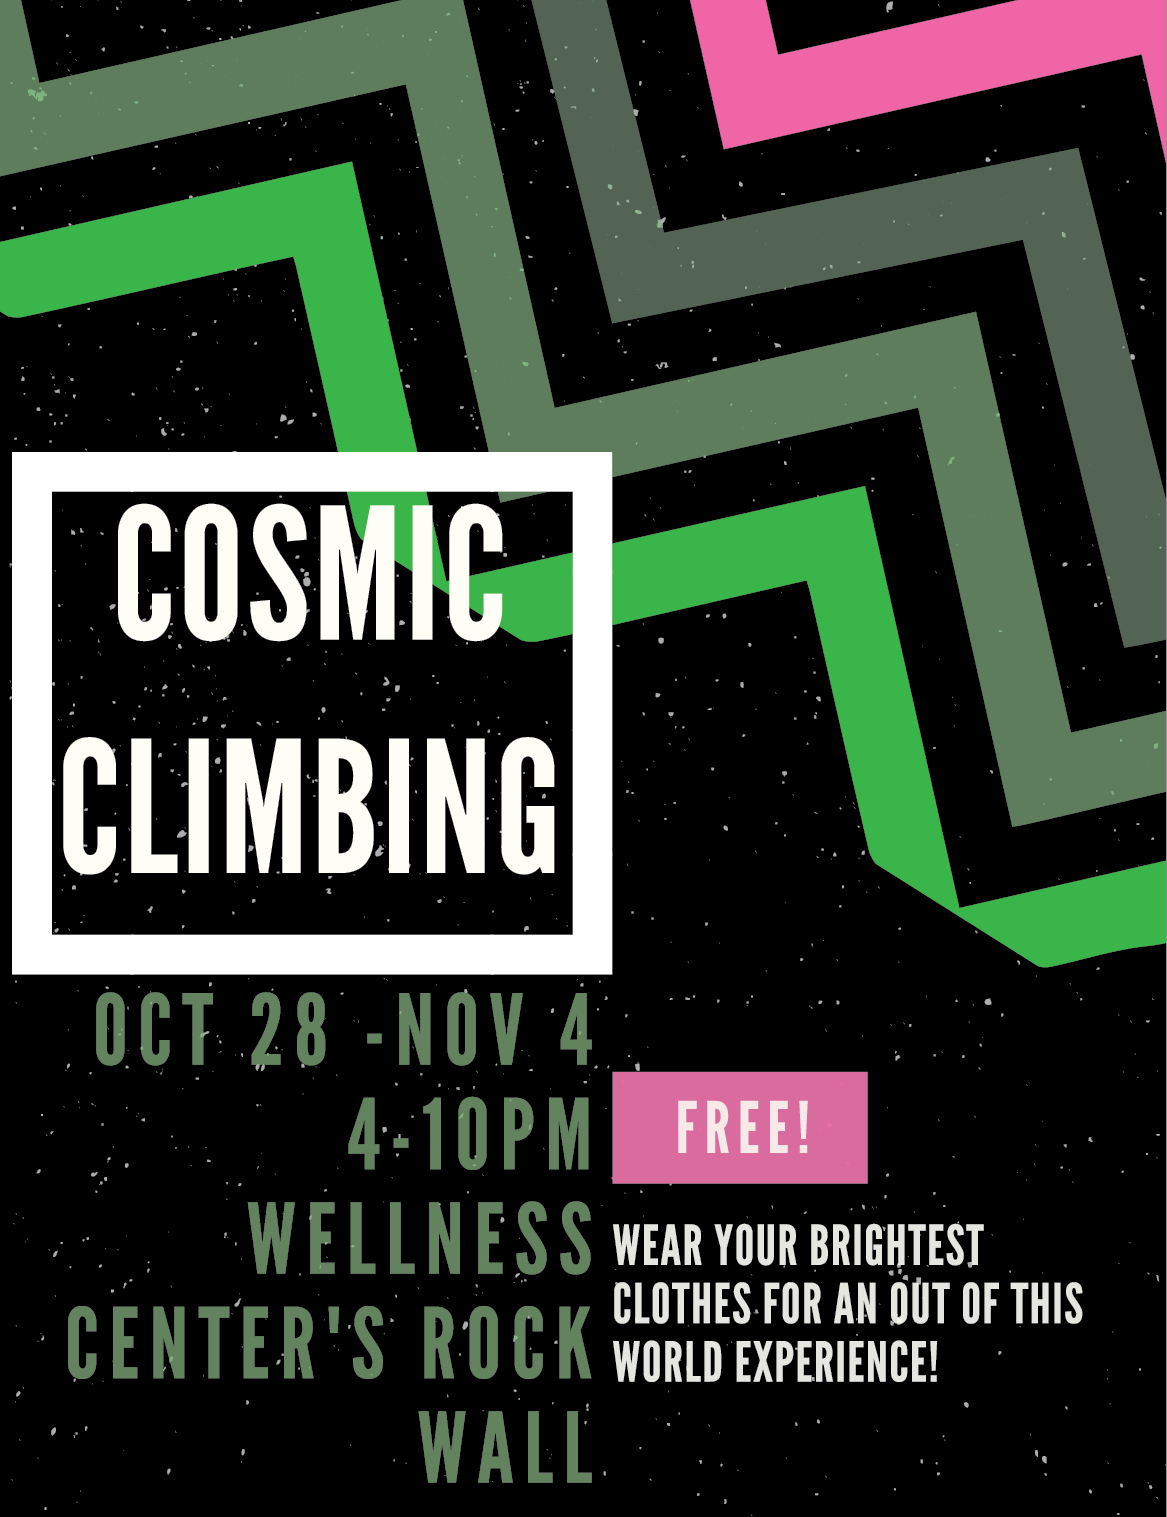 Cosmic climbing. Oct 28- Nov 4, 4-10 pm, Wellness center's rock wall. Free. Wear your brightest clothes for an out of this world experience